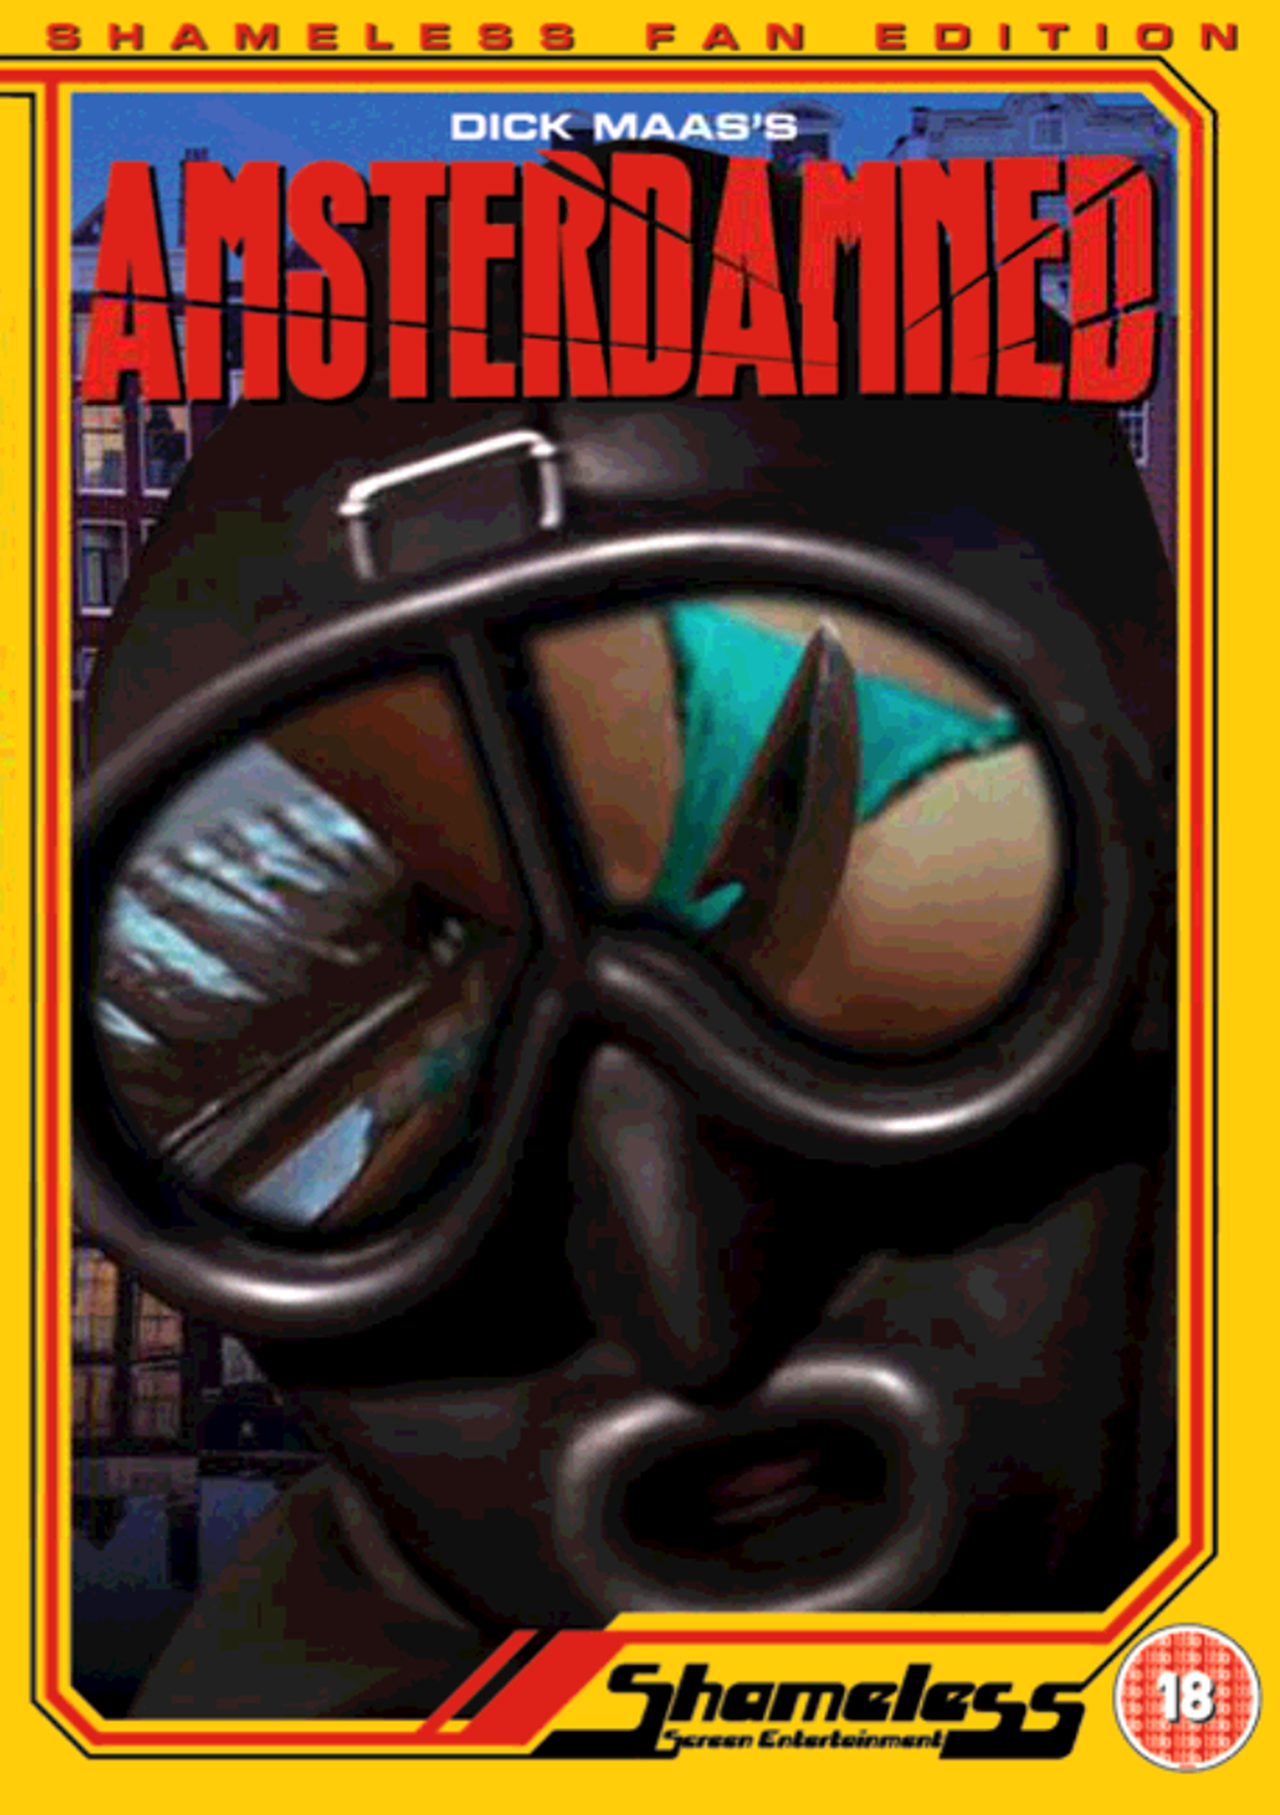 Amsterdamned - 1